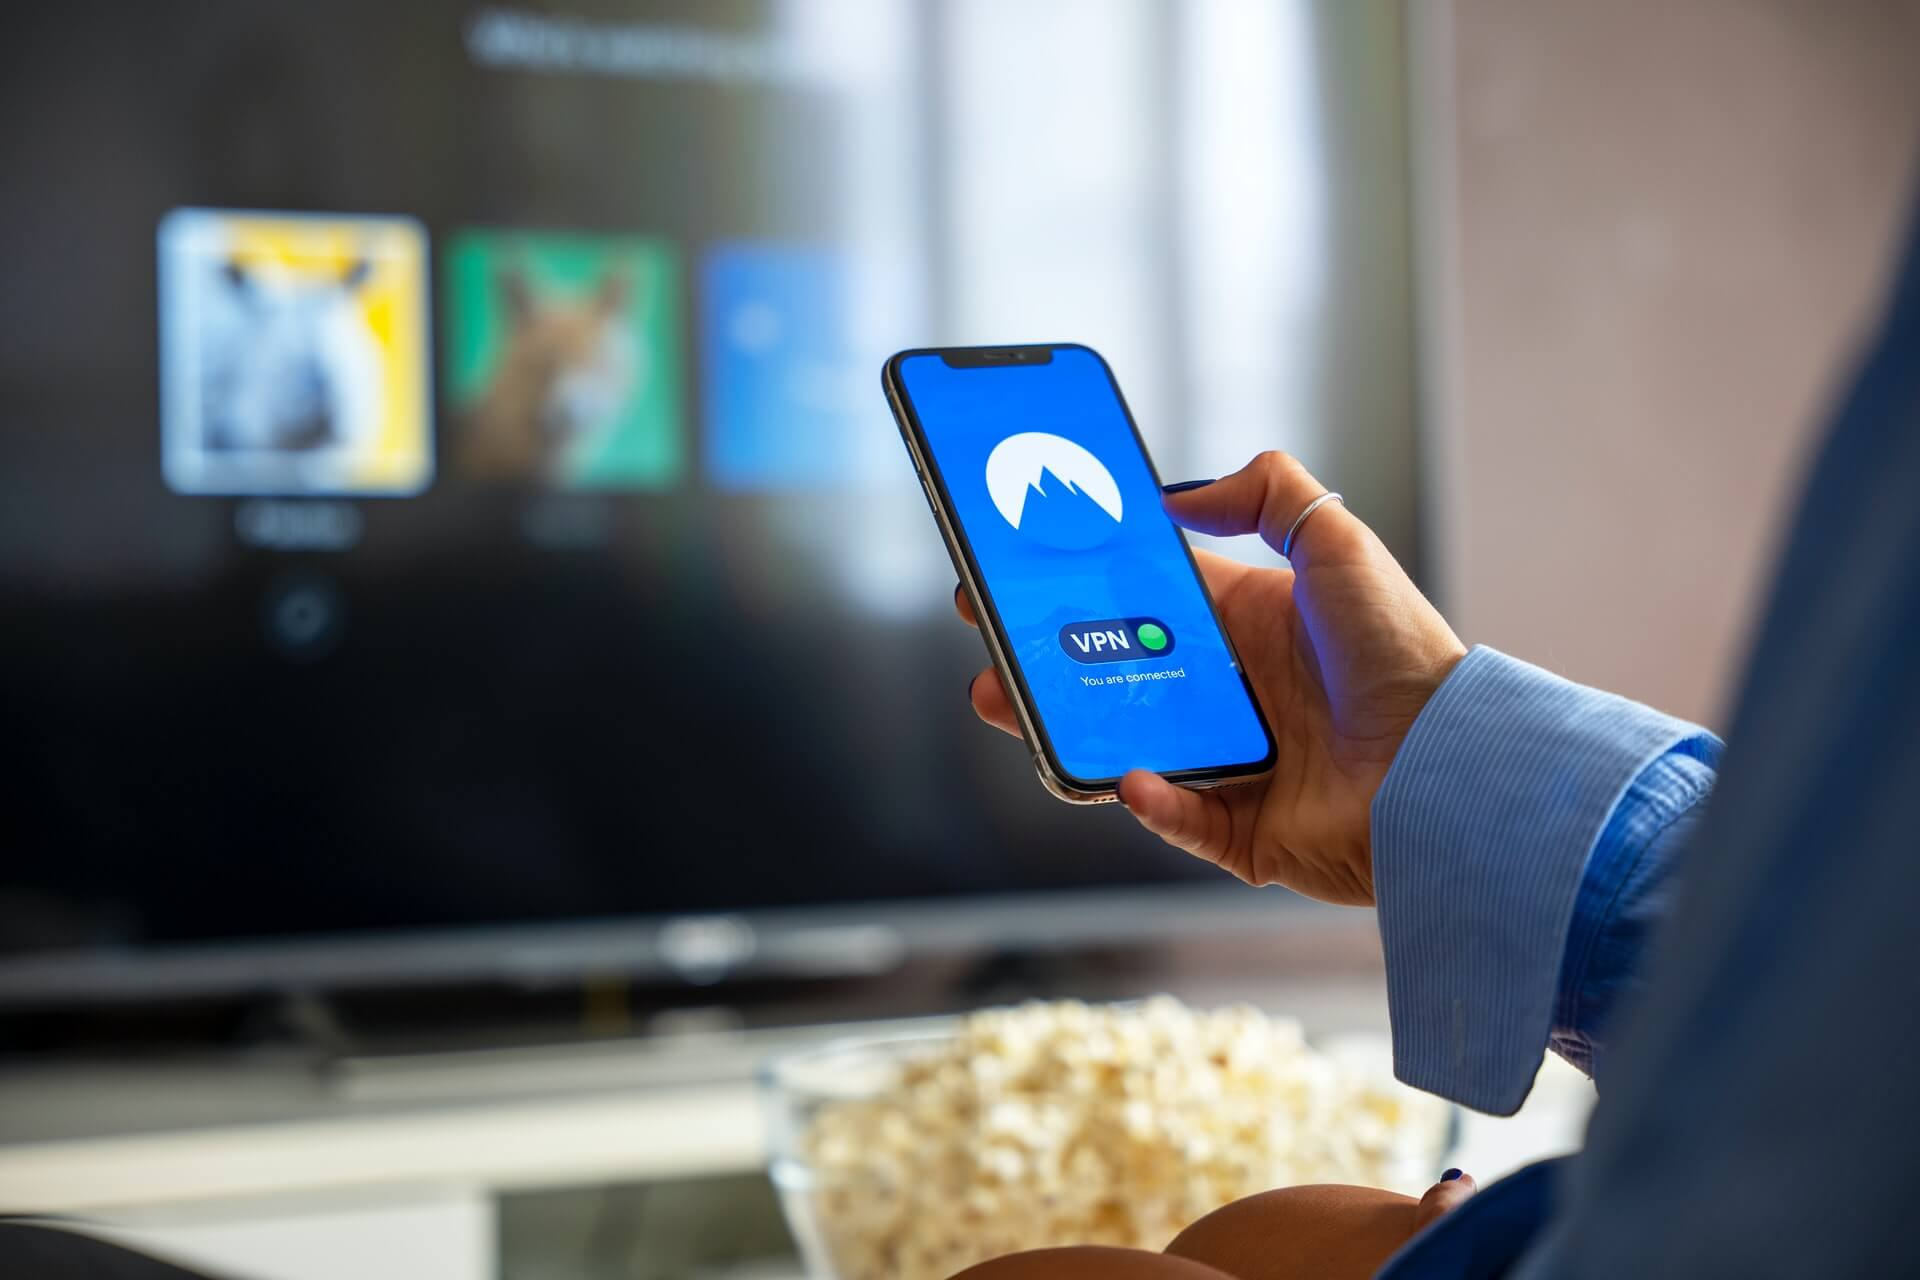 Top 5 VPN Apps for Android in 2021